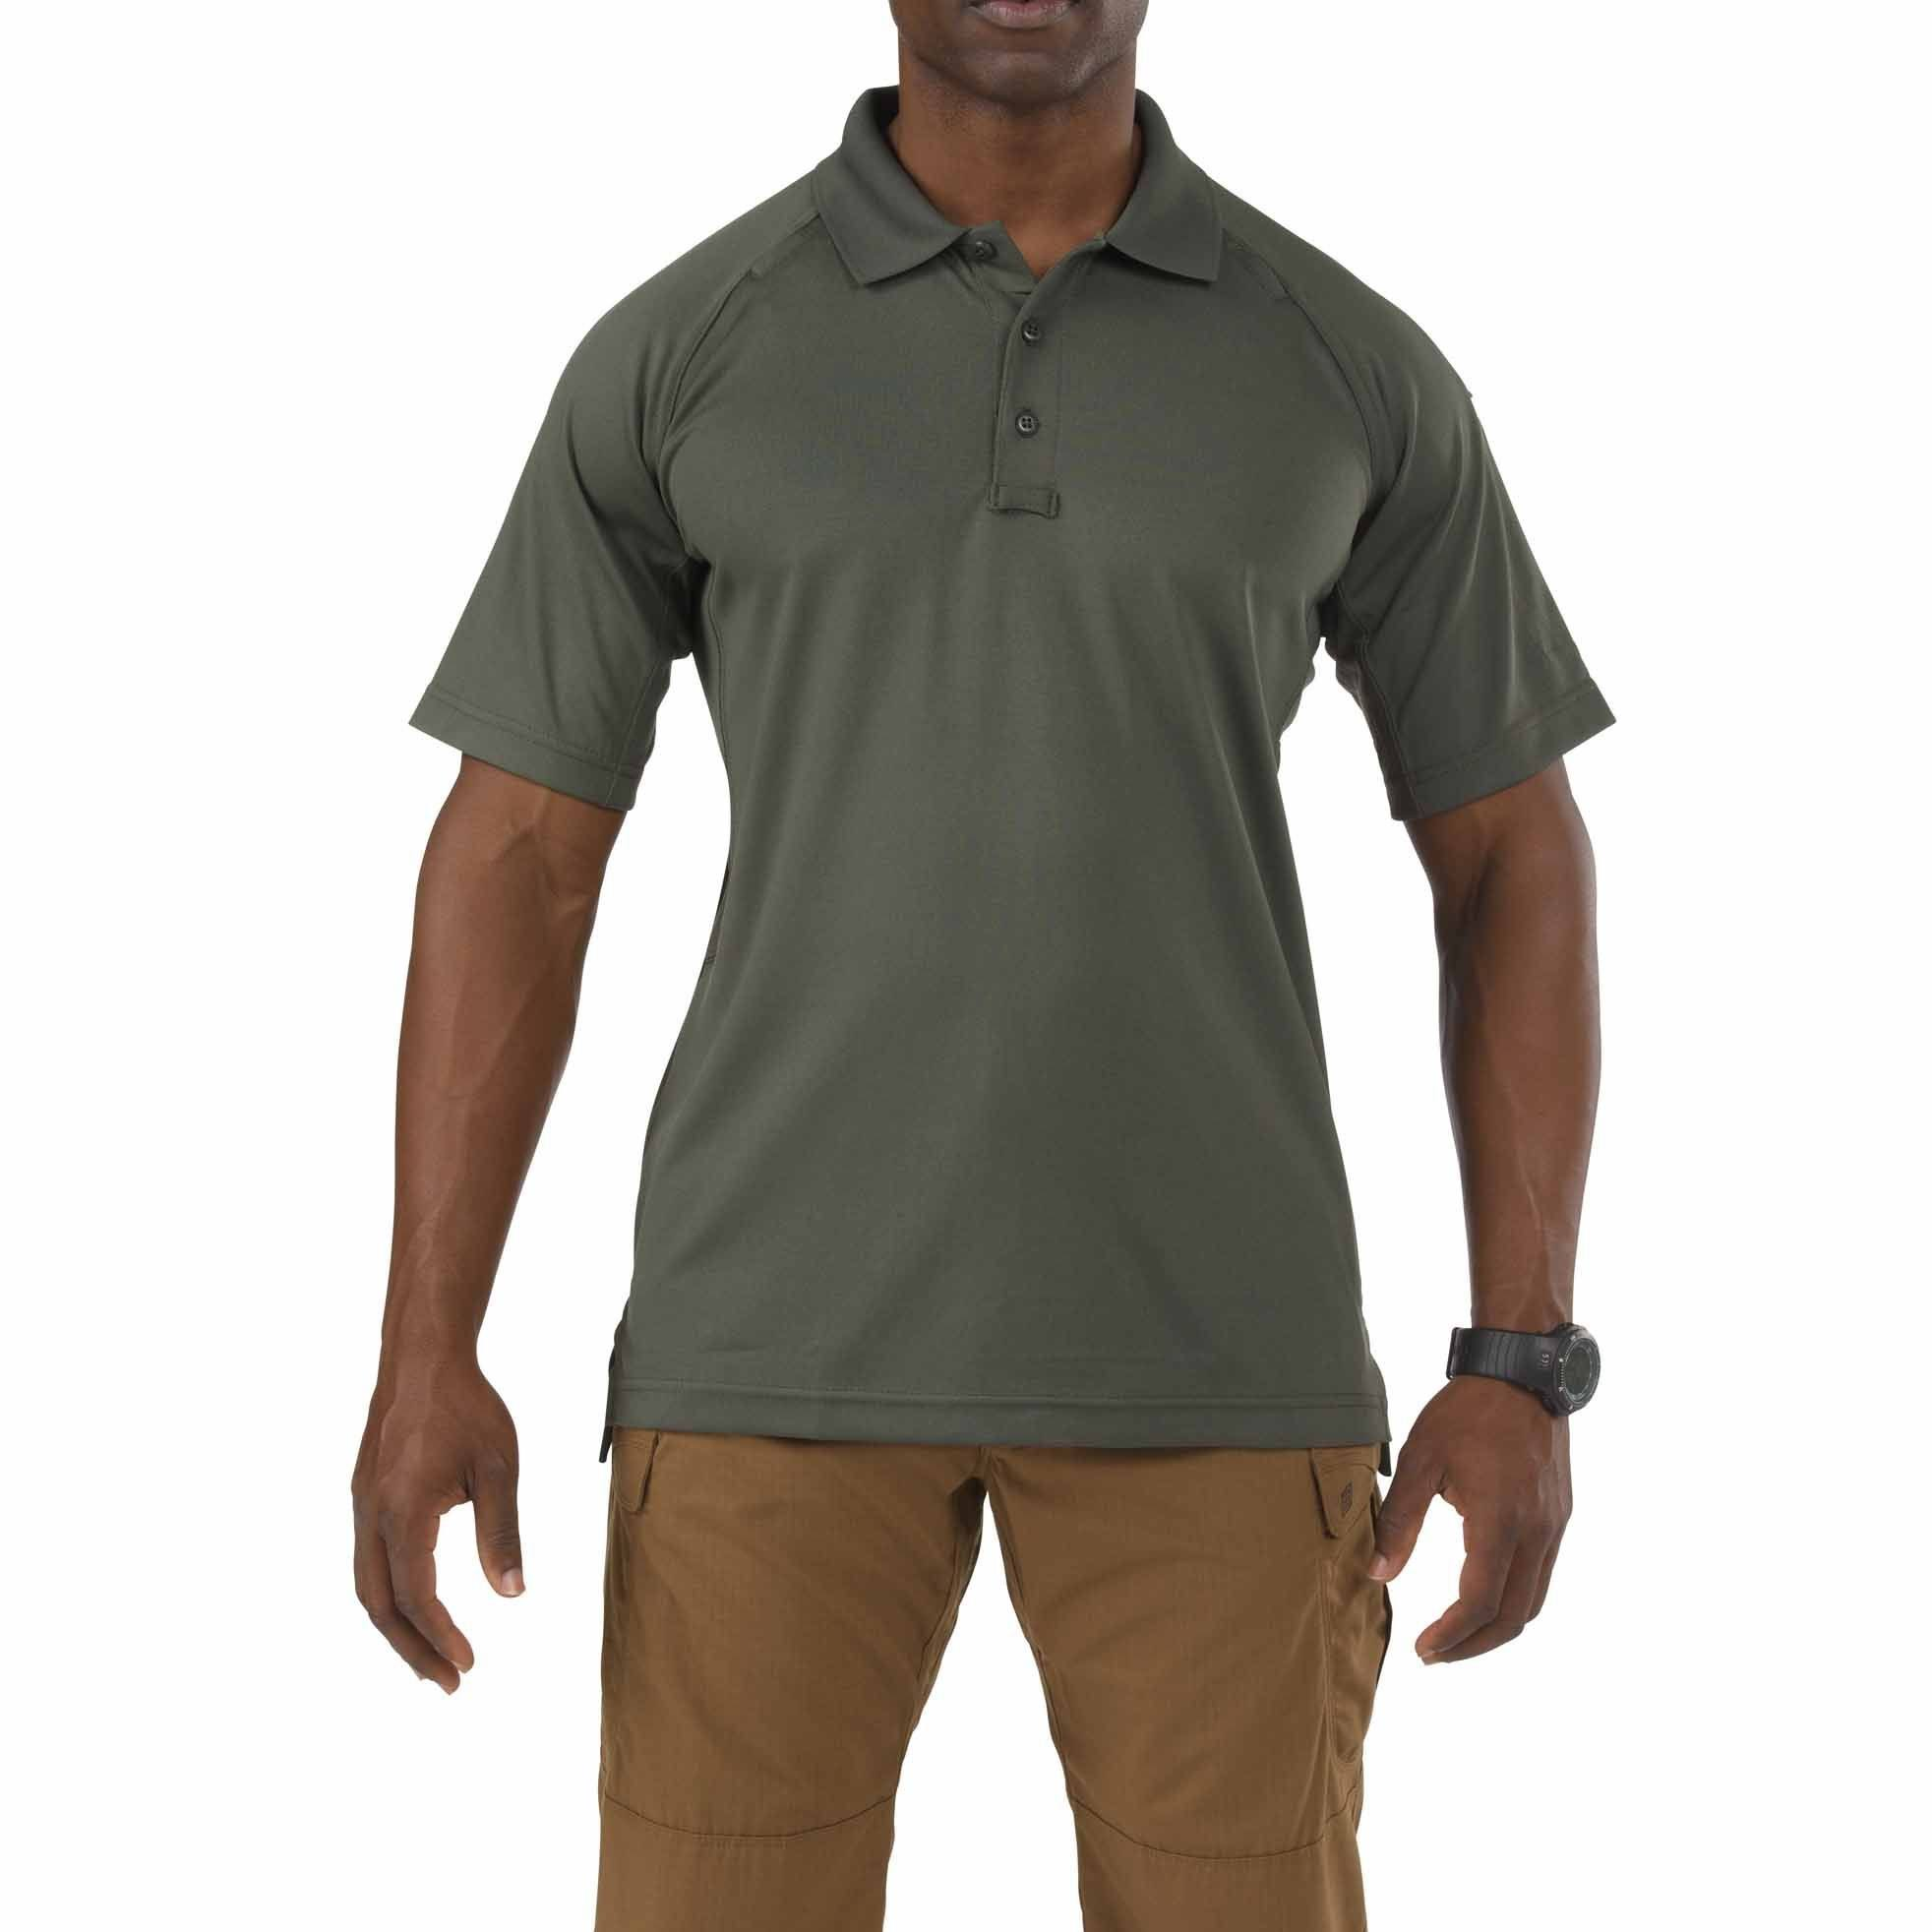 5 11 Men's Performance Tactical Polo Short Sleeve Shirt - Green, Large